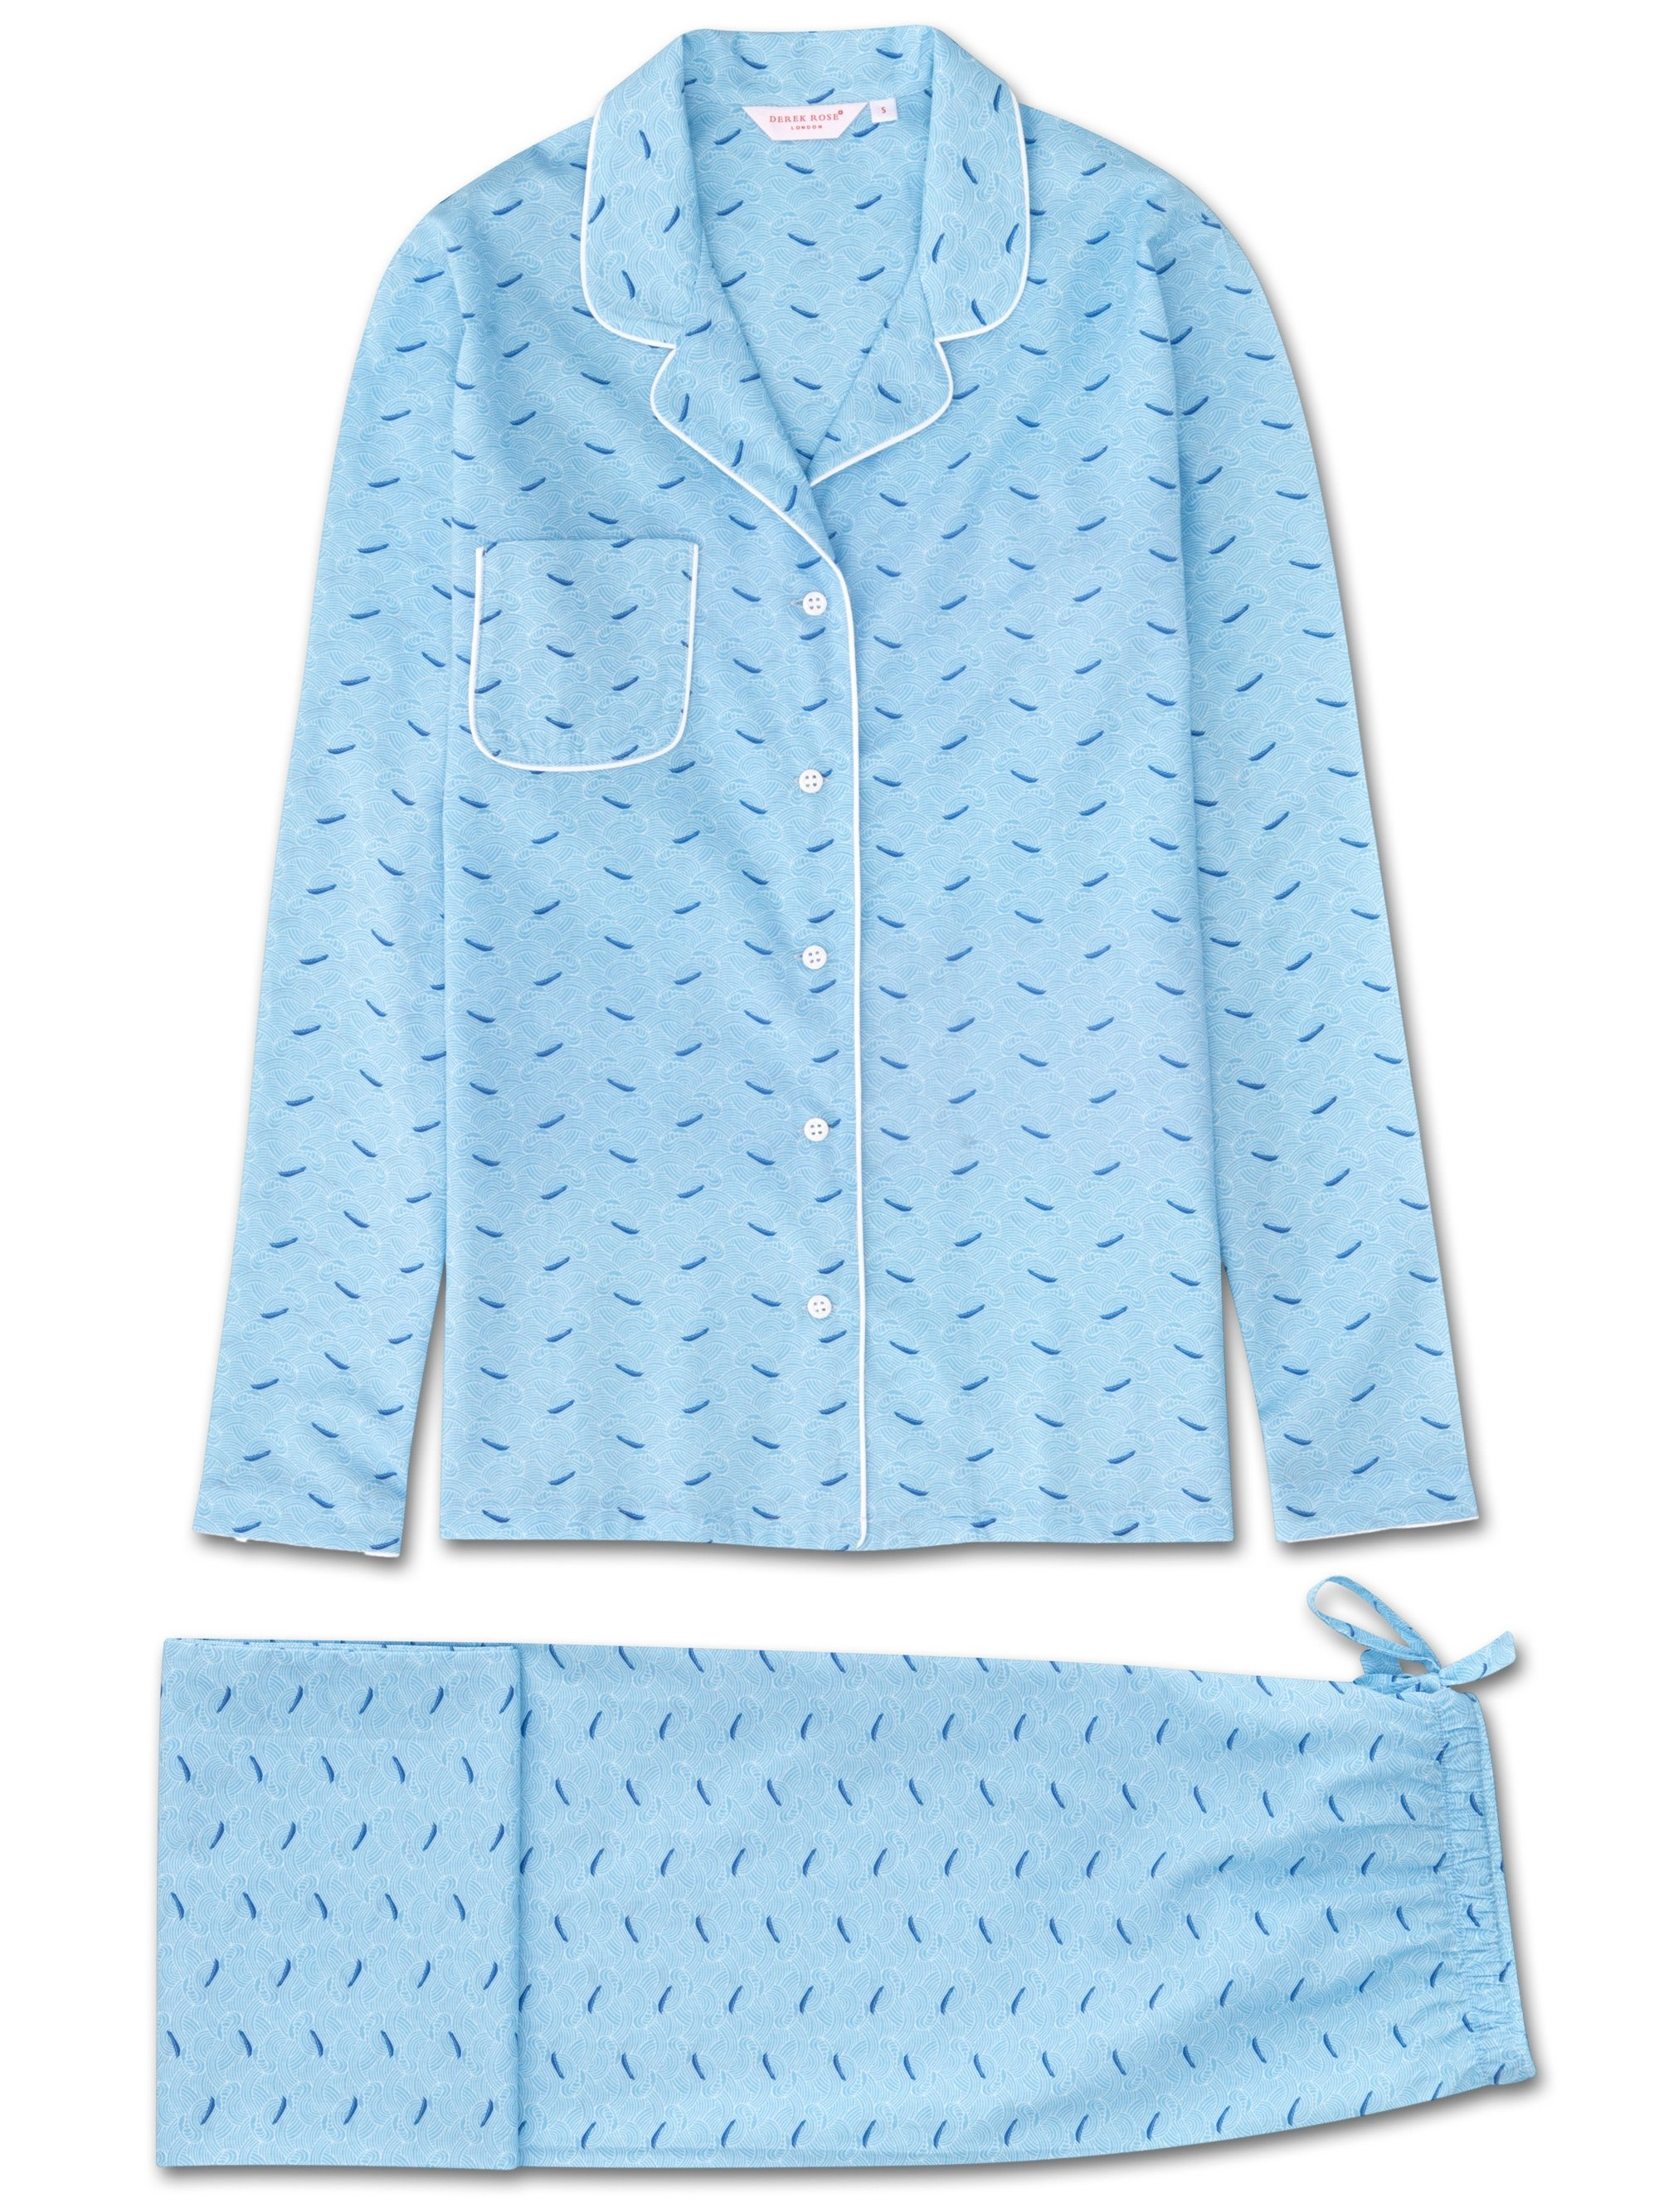 Women's Pyjamas Ledbury 12 Cotton Batiste Blue